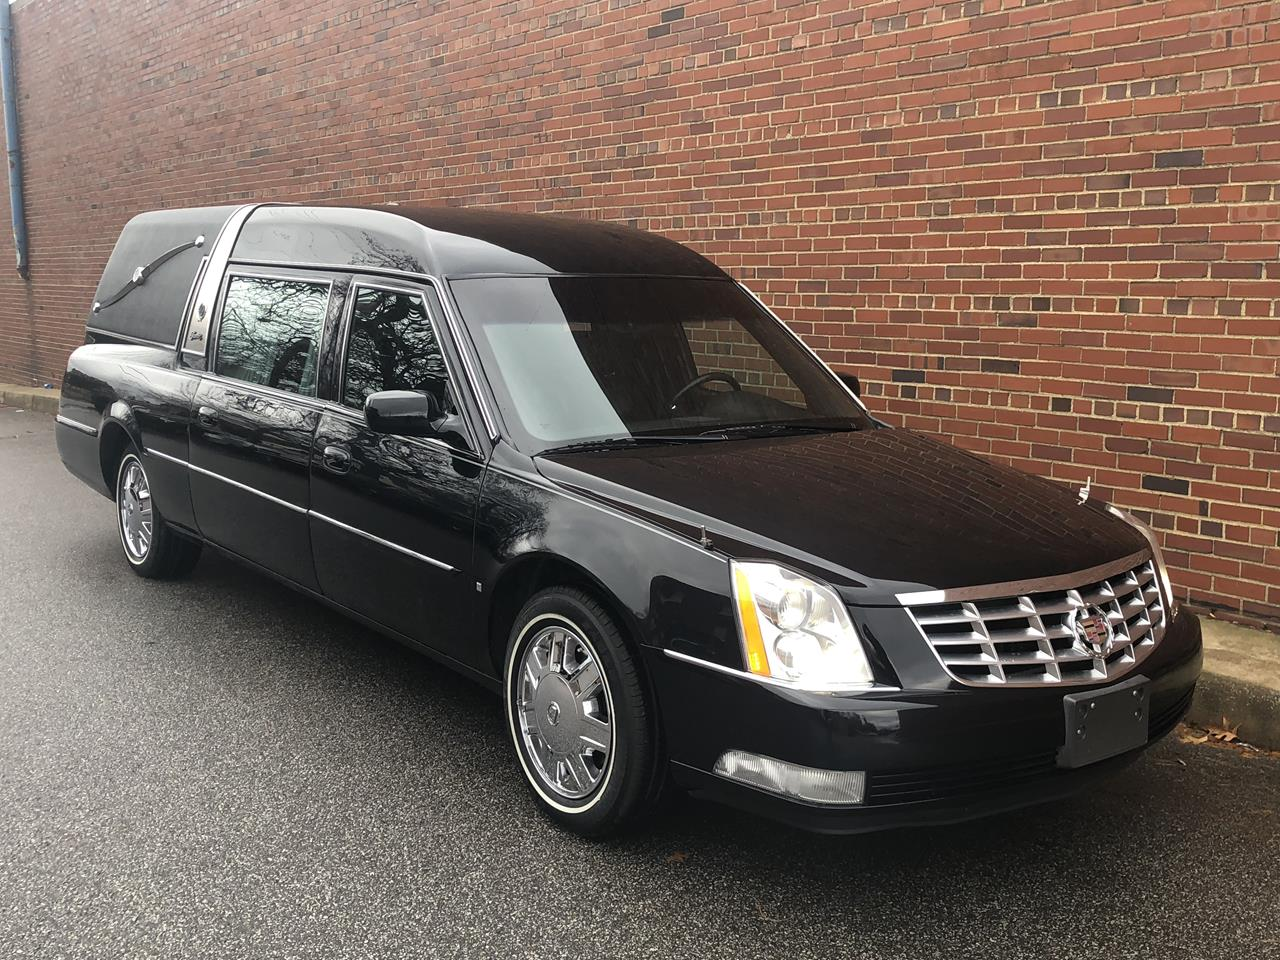 2006 Cadillac Superior Crown Sovereign Hearse 93 2